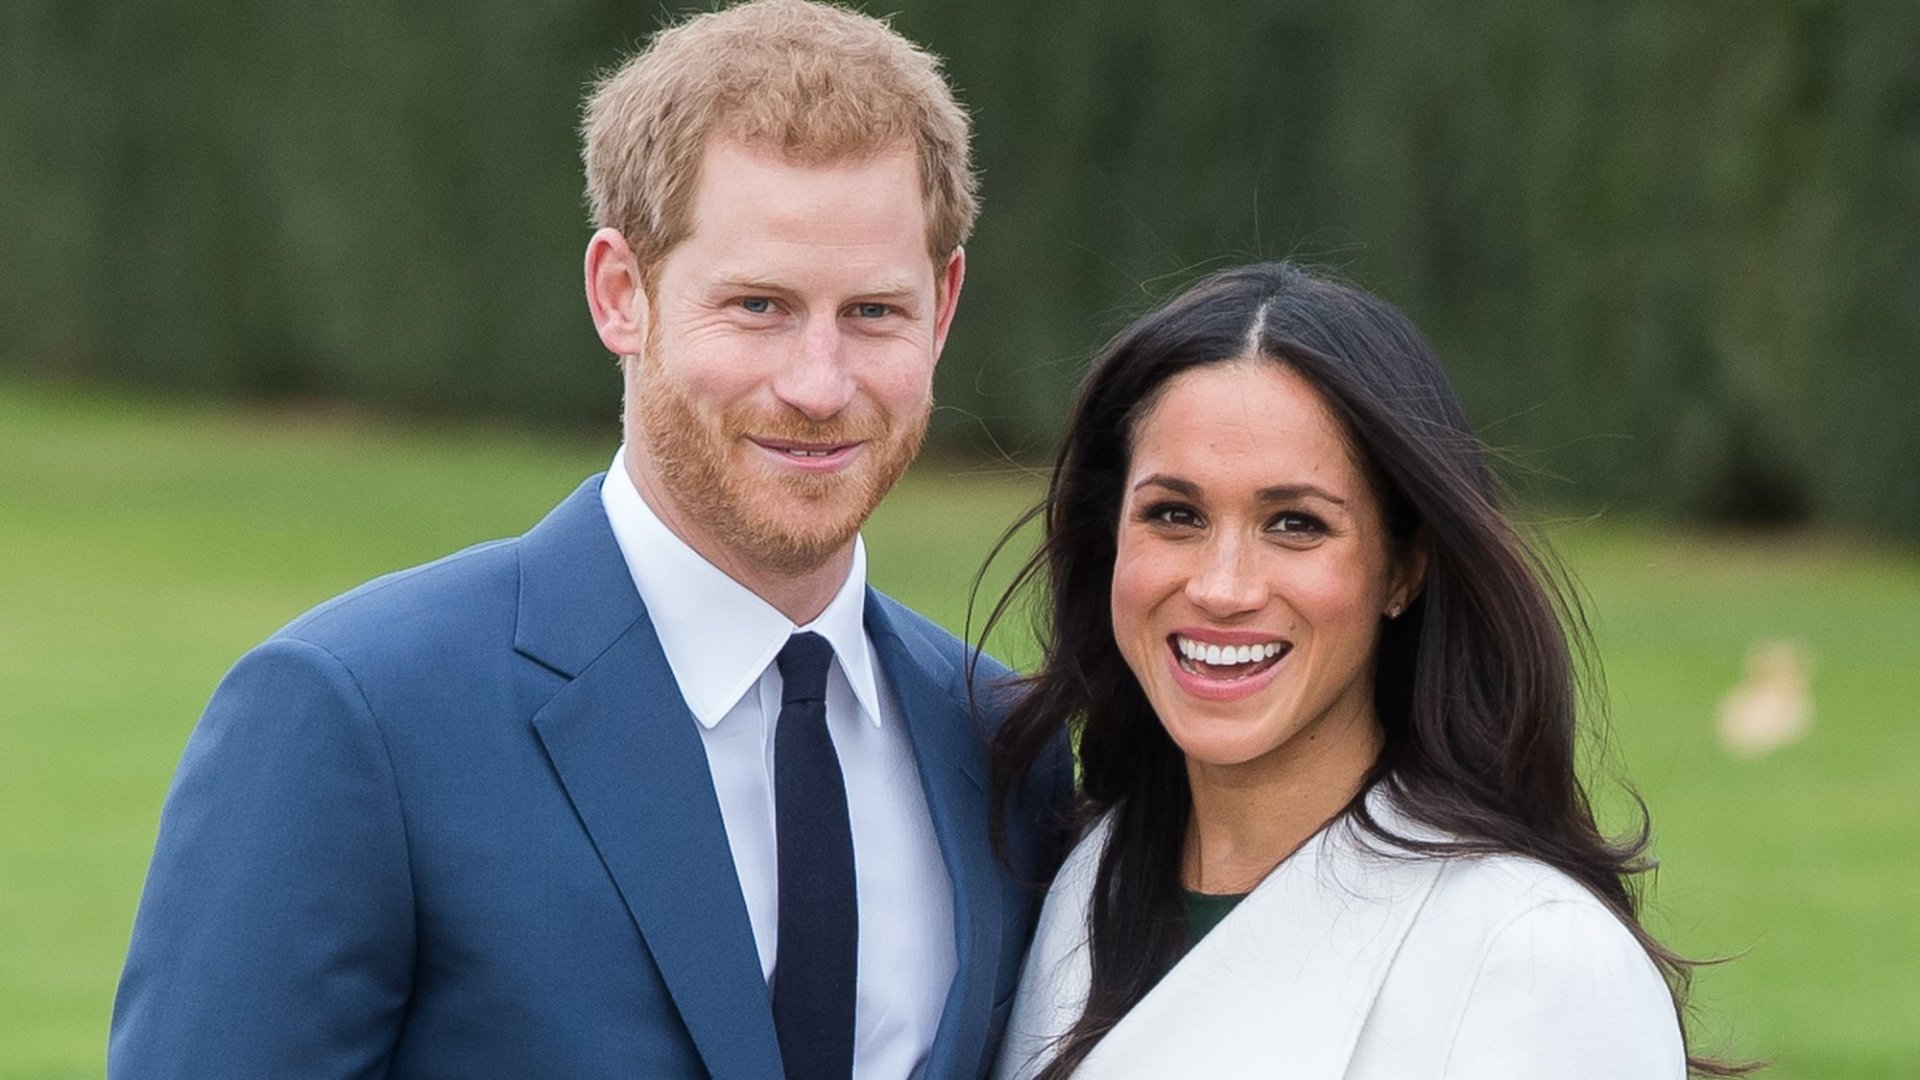 Meghan Markle May Become a Princess by Marrying Prince Harry, but the IRS Will Want Its Share of the Royal Jewels.